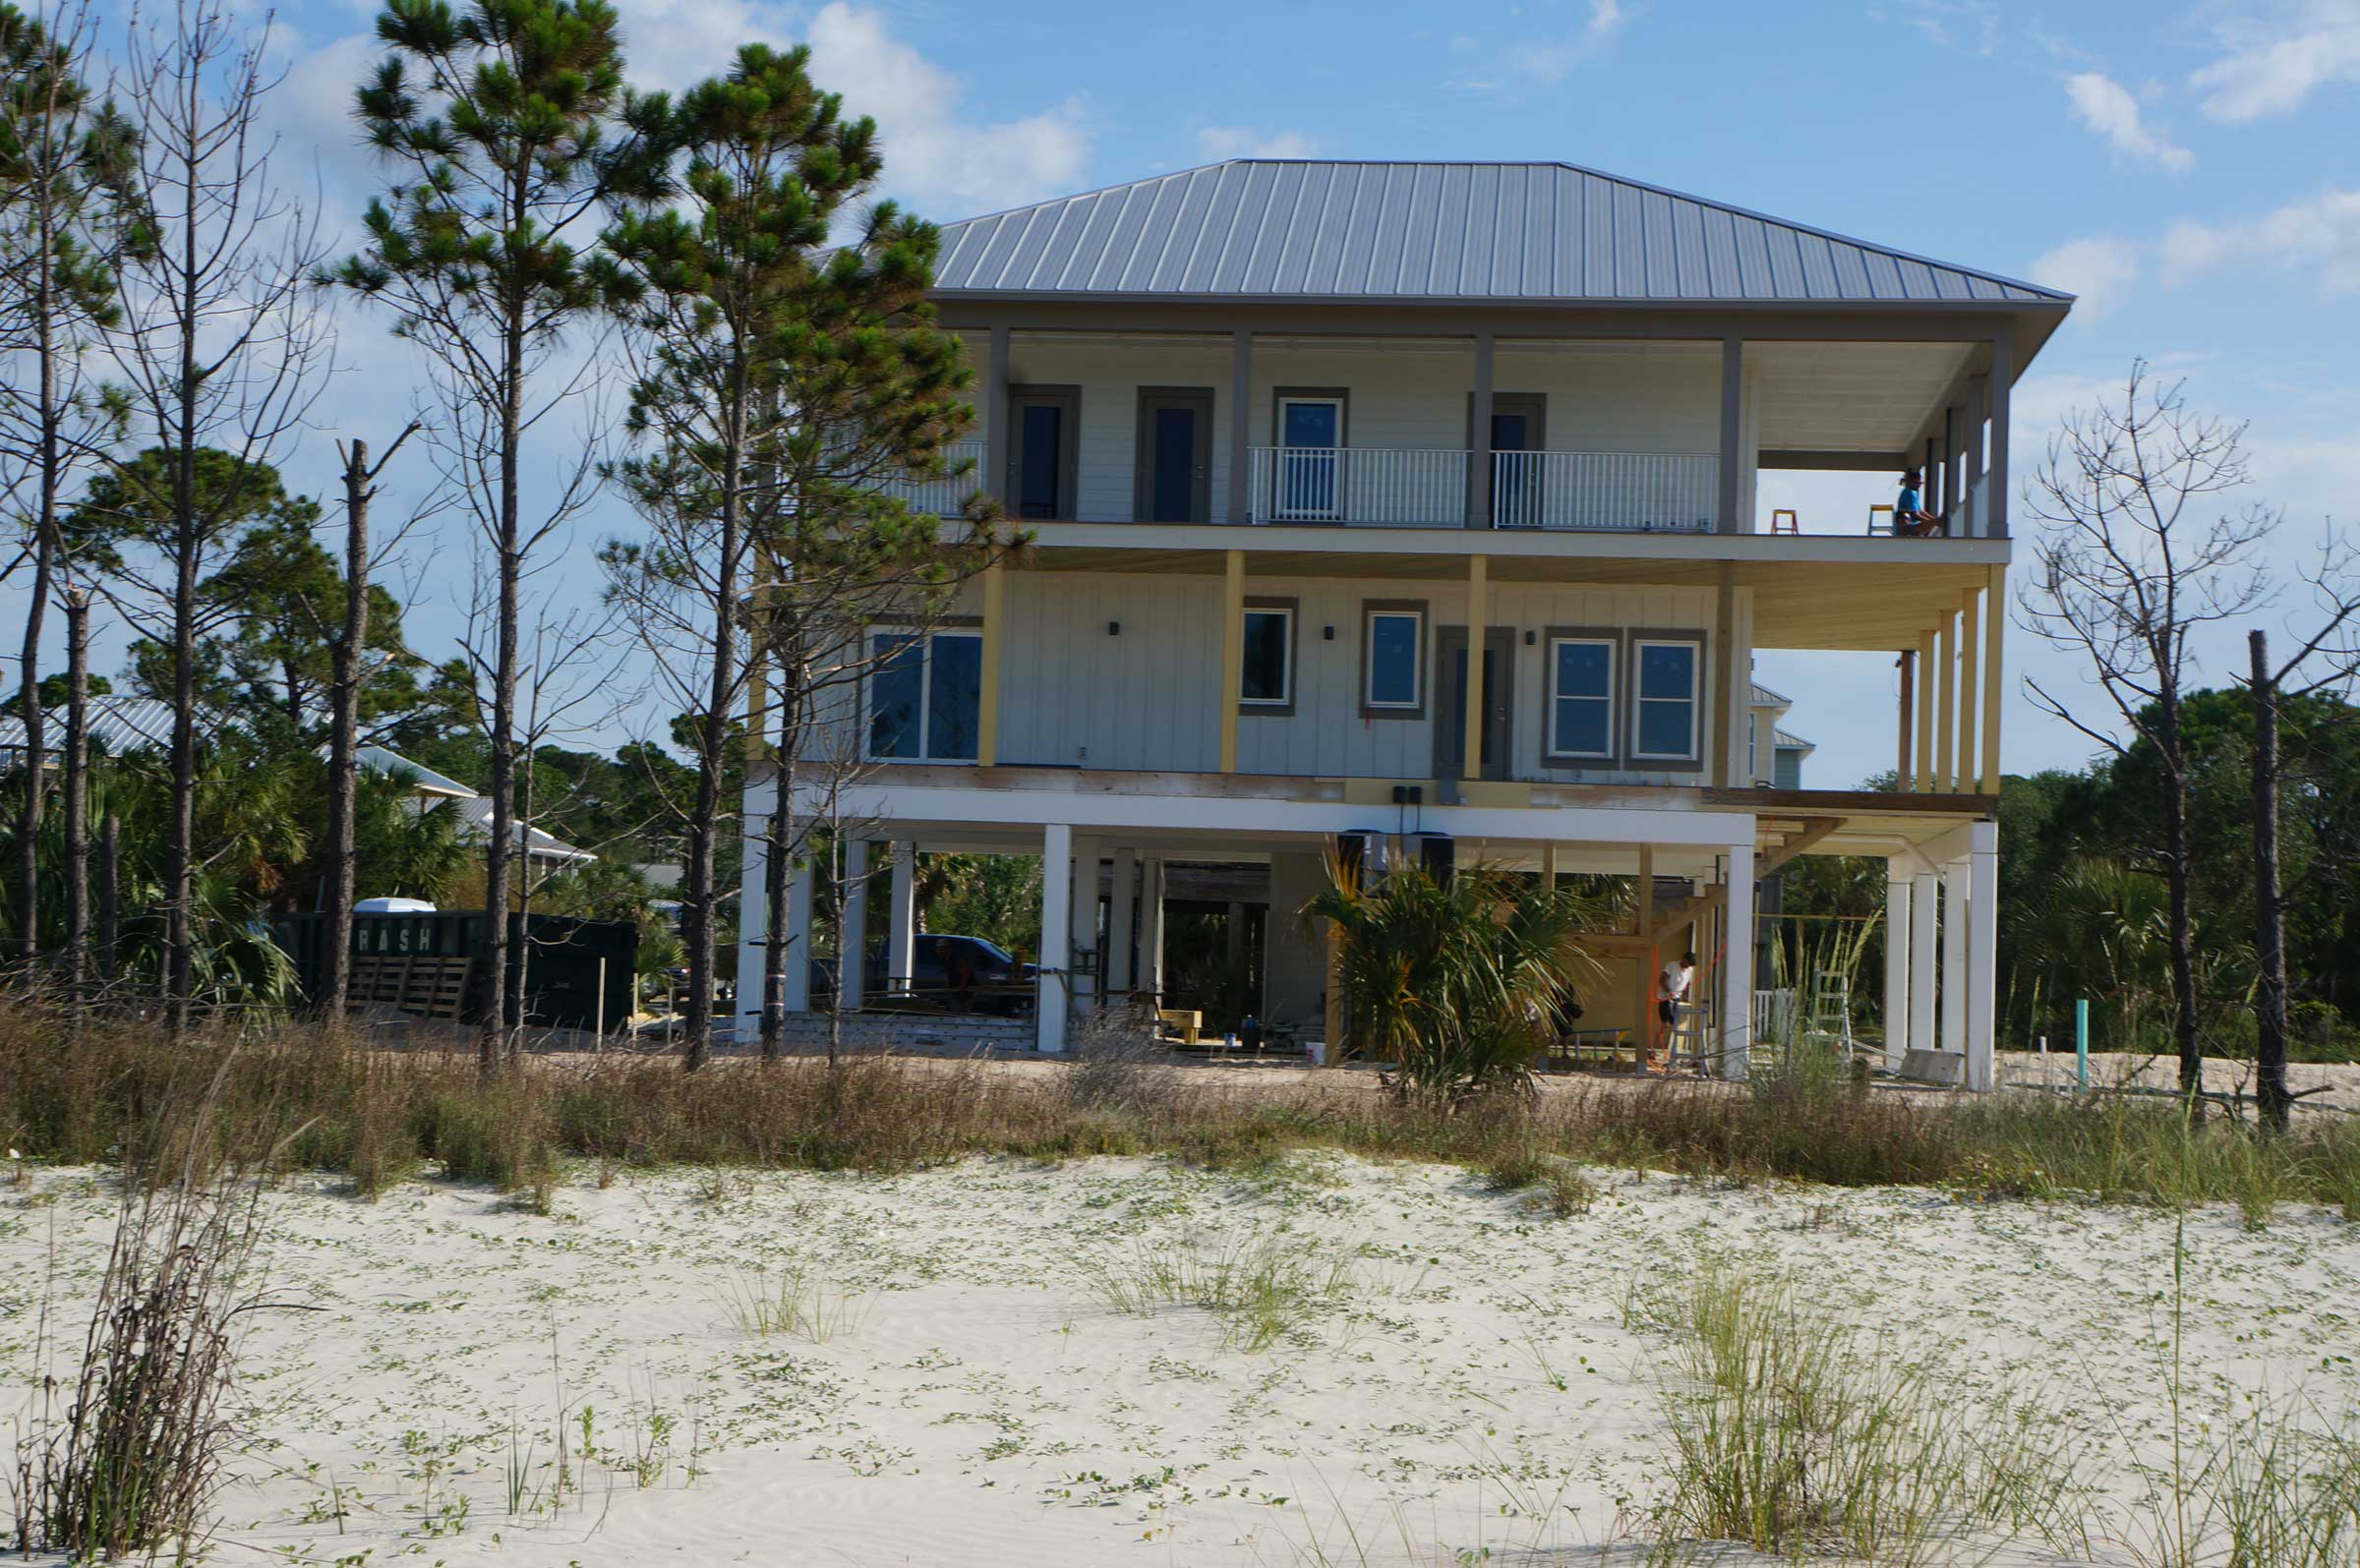 Three story home under construction in Mexico Beach. Are you looking for a new home builder?